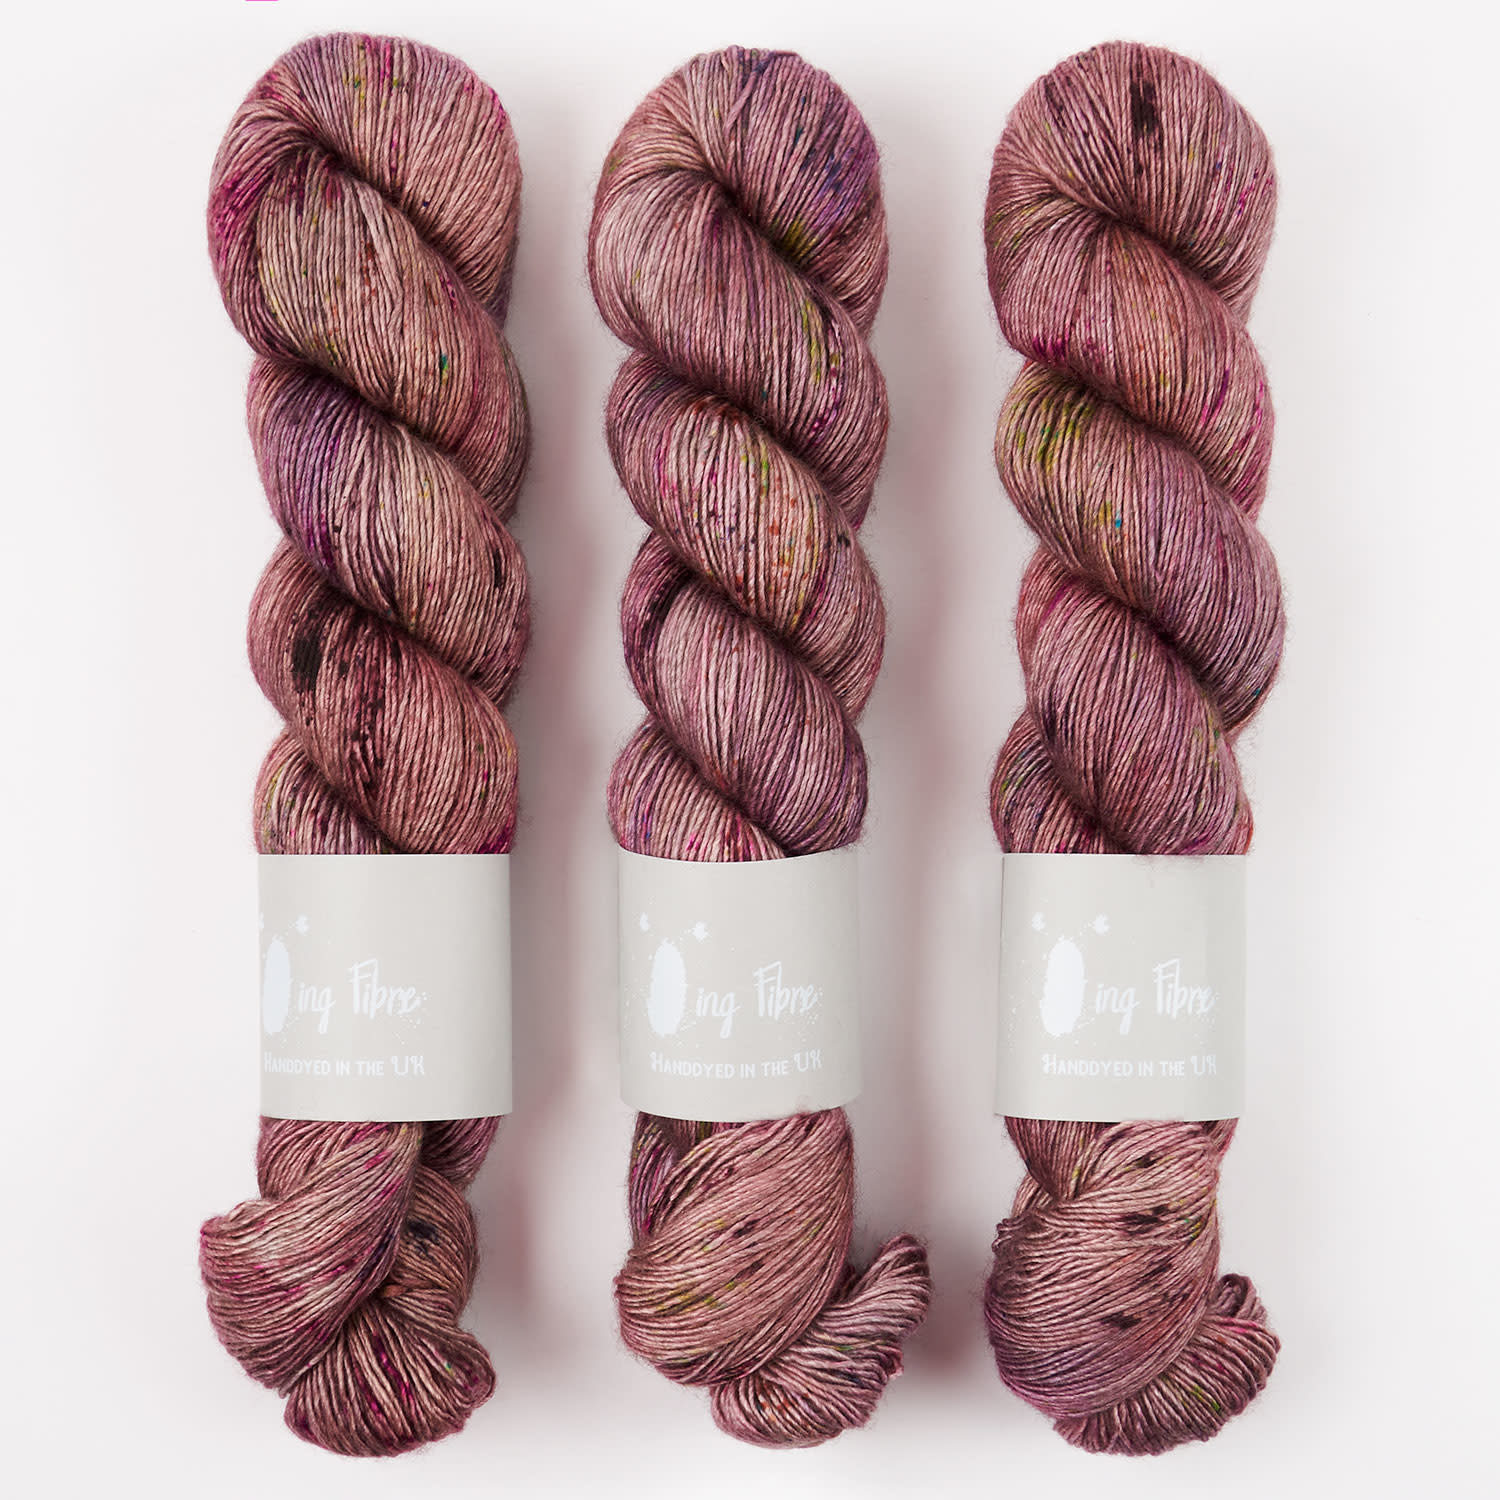 Qing Fibre YAK SILK - ANTIQUE ROSE